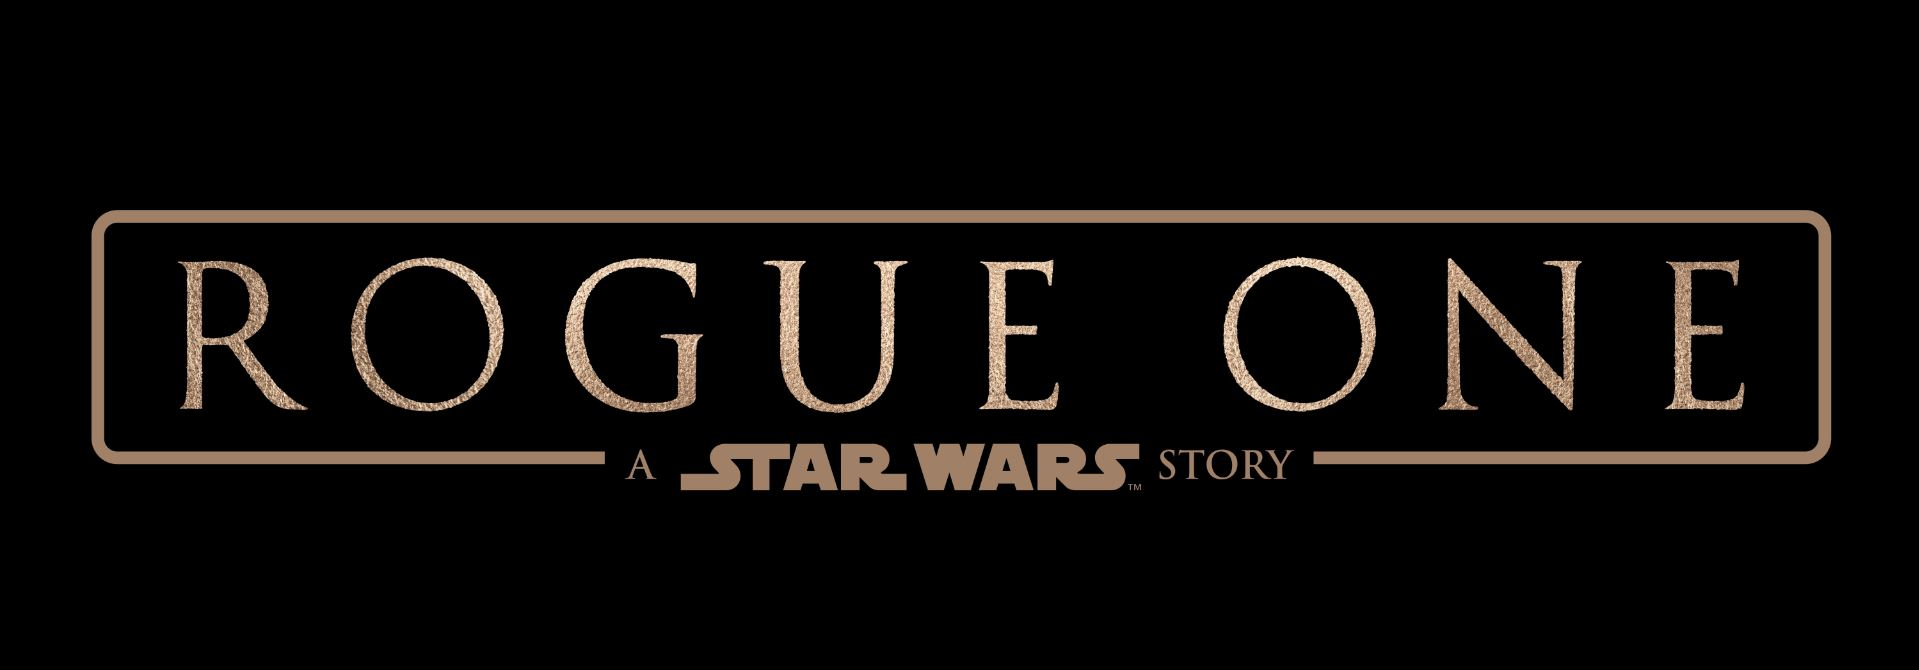 Rogue One A Star Wars Story banner high resolution